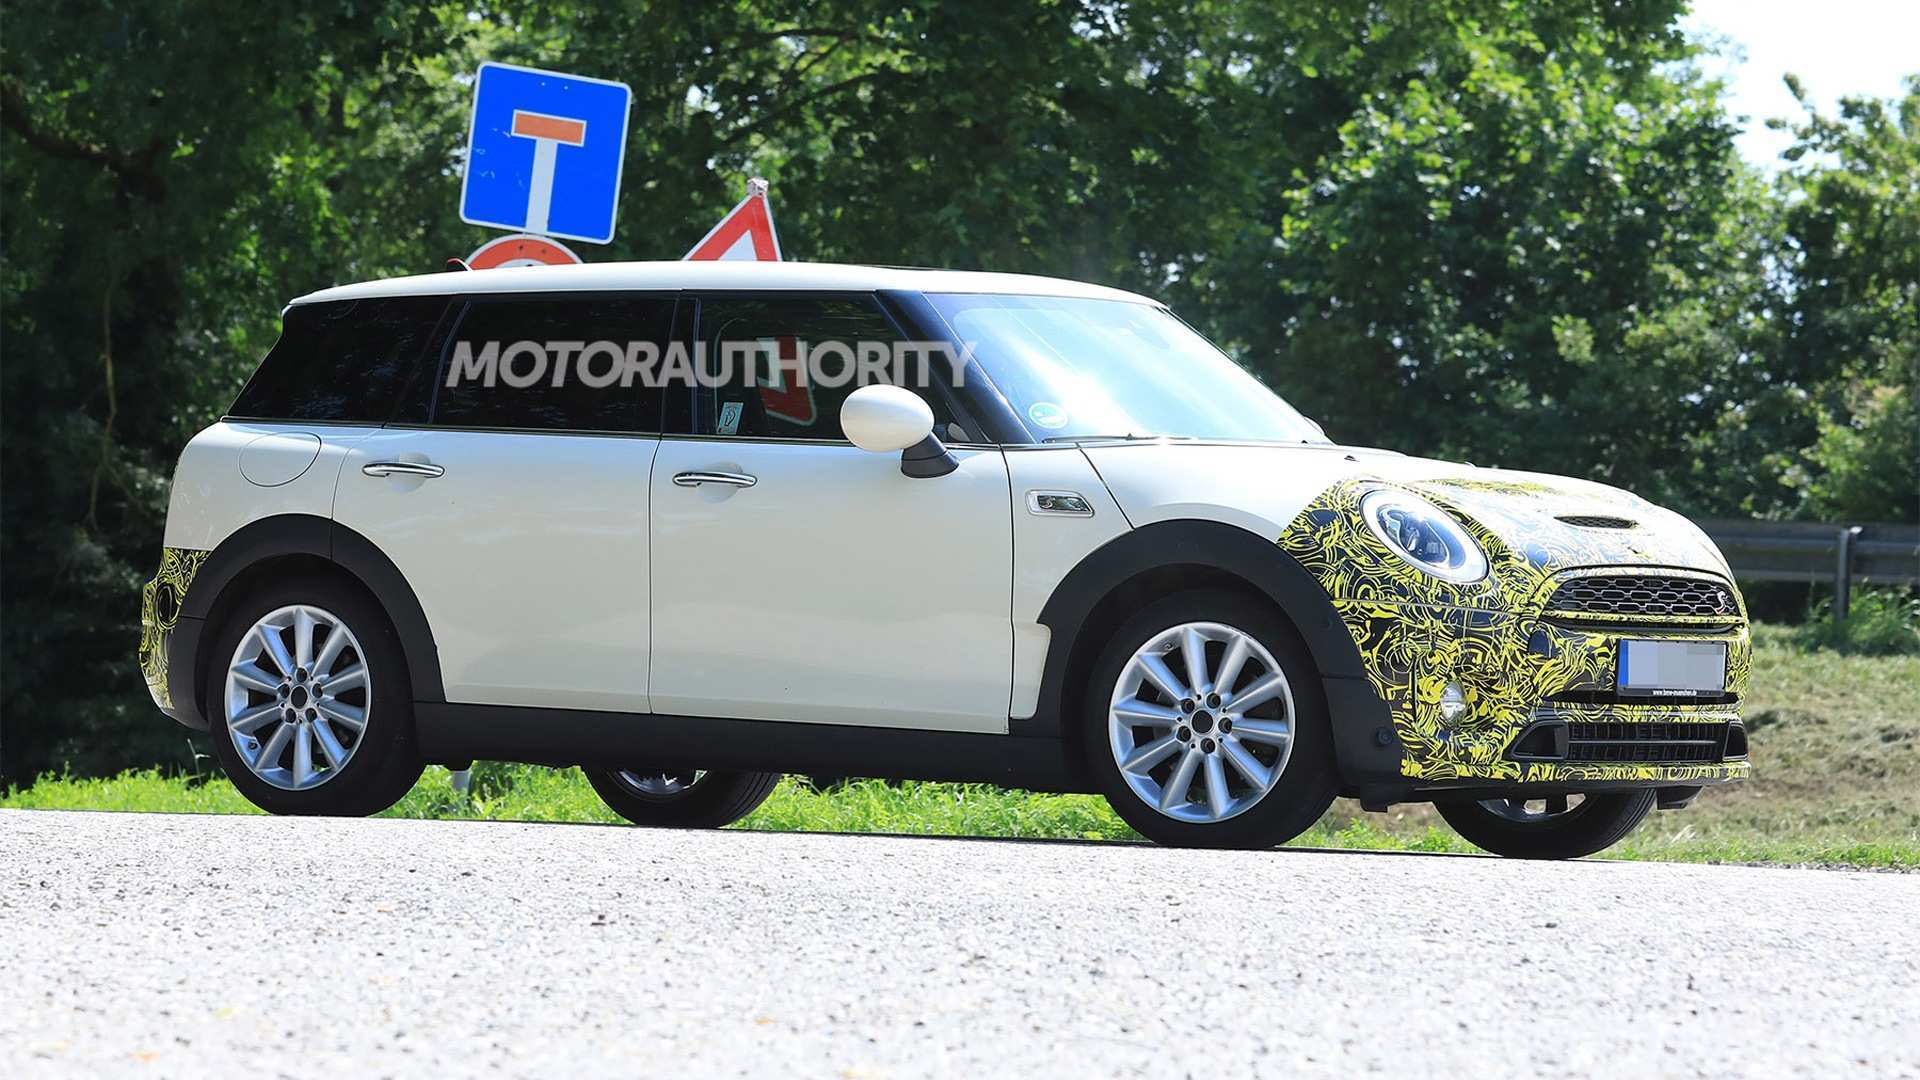 31 New 2020 Mini Clubman Price and Review with 2020 Mini Clubman